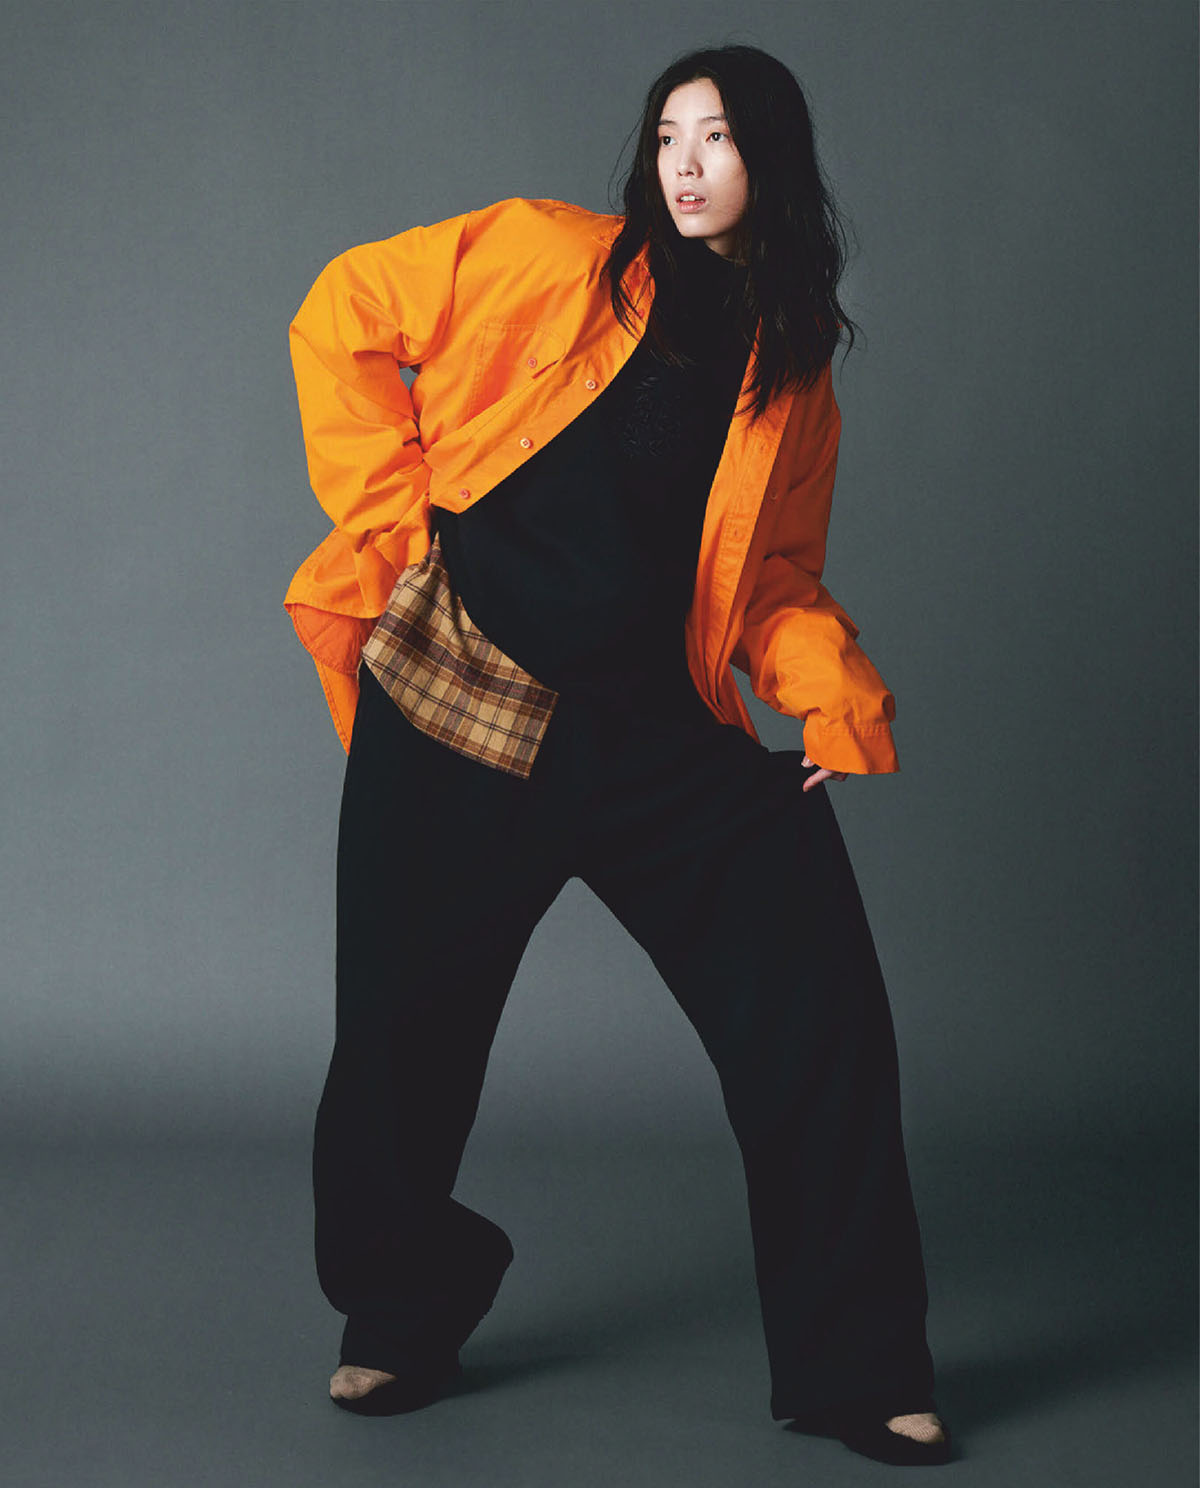 Jessie Hsu by Cheng Po Ou Yang for Vogue Taiwan February 2021